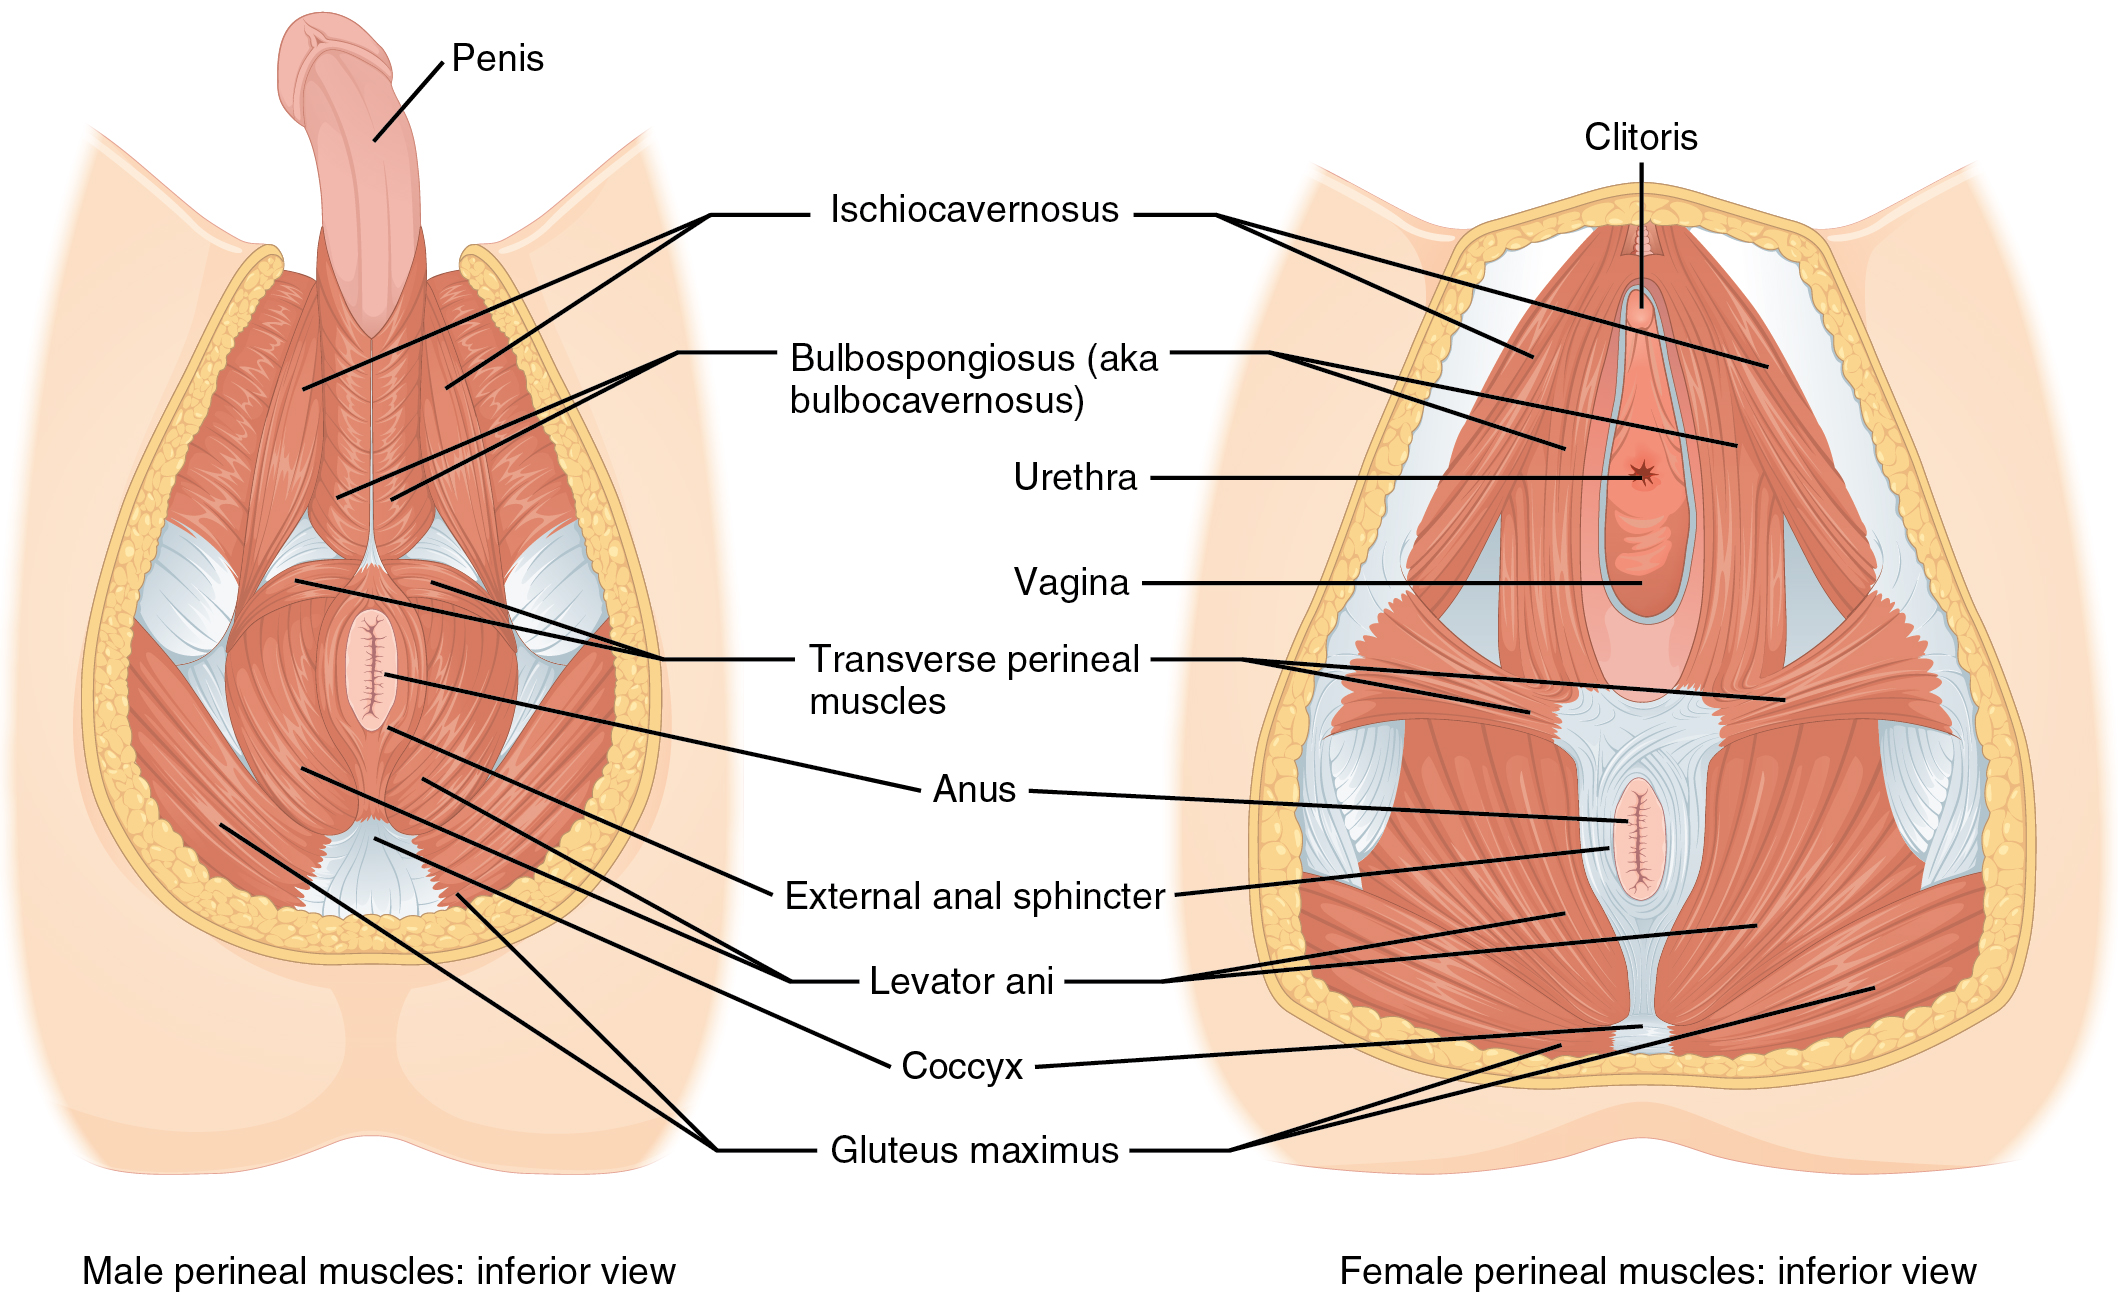 The left panel shows the muscles of the perineum in the male, and the right panel shows the muscles of the perineum in the female.